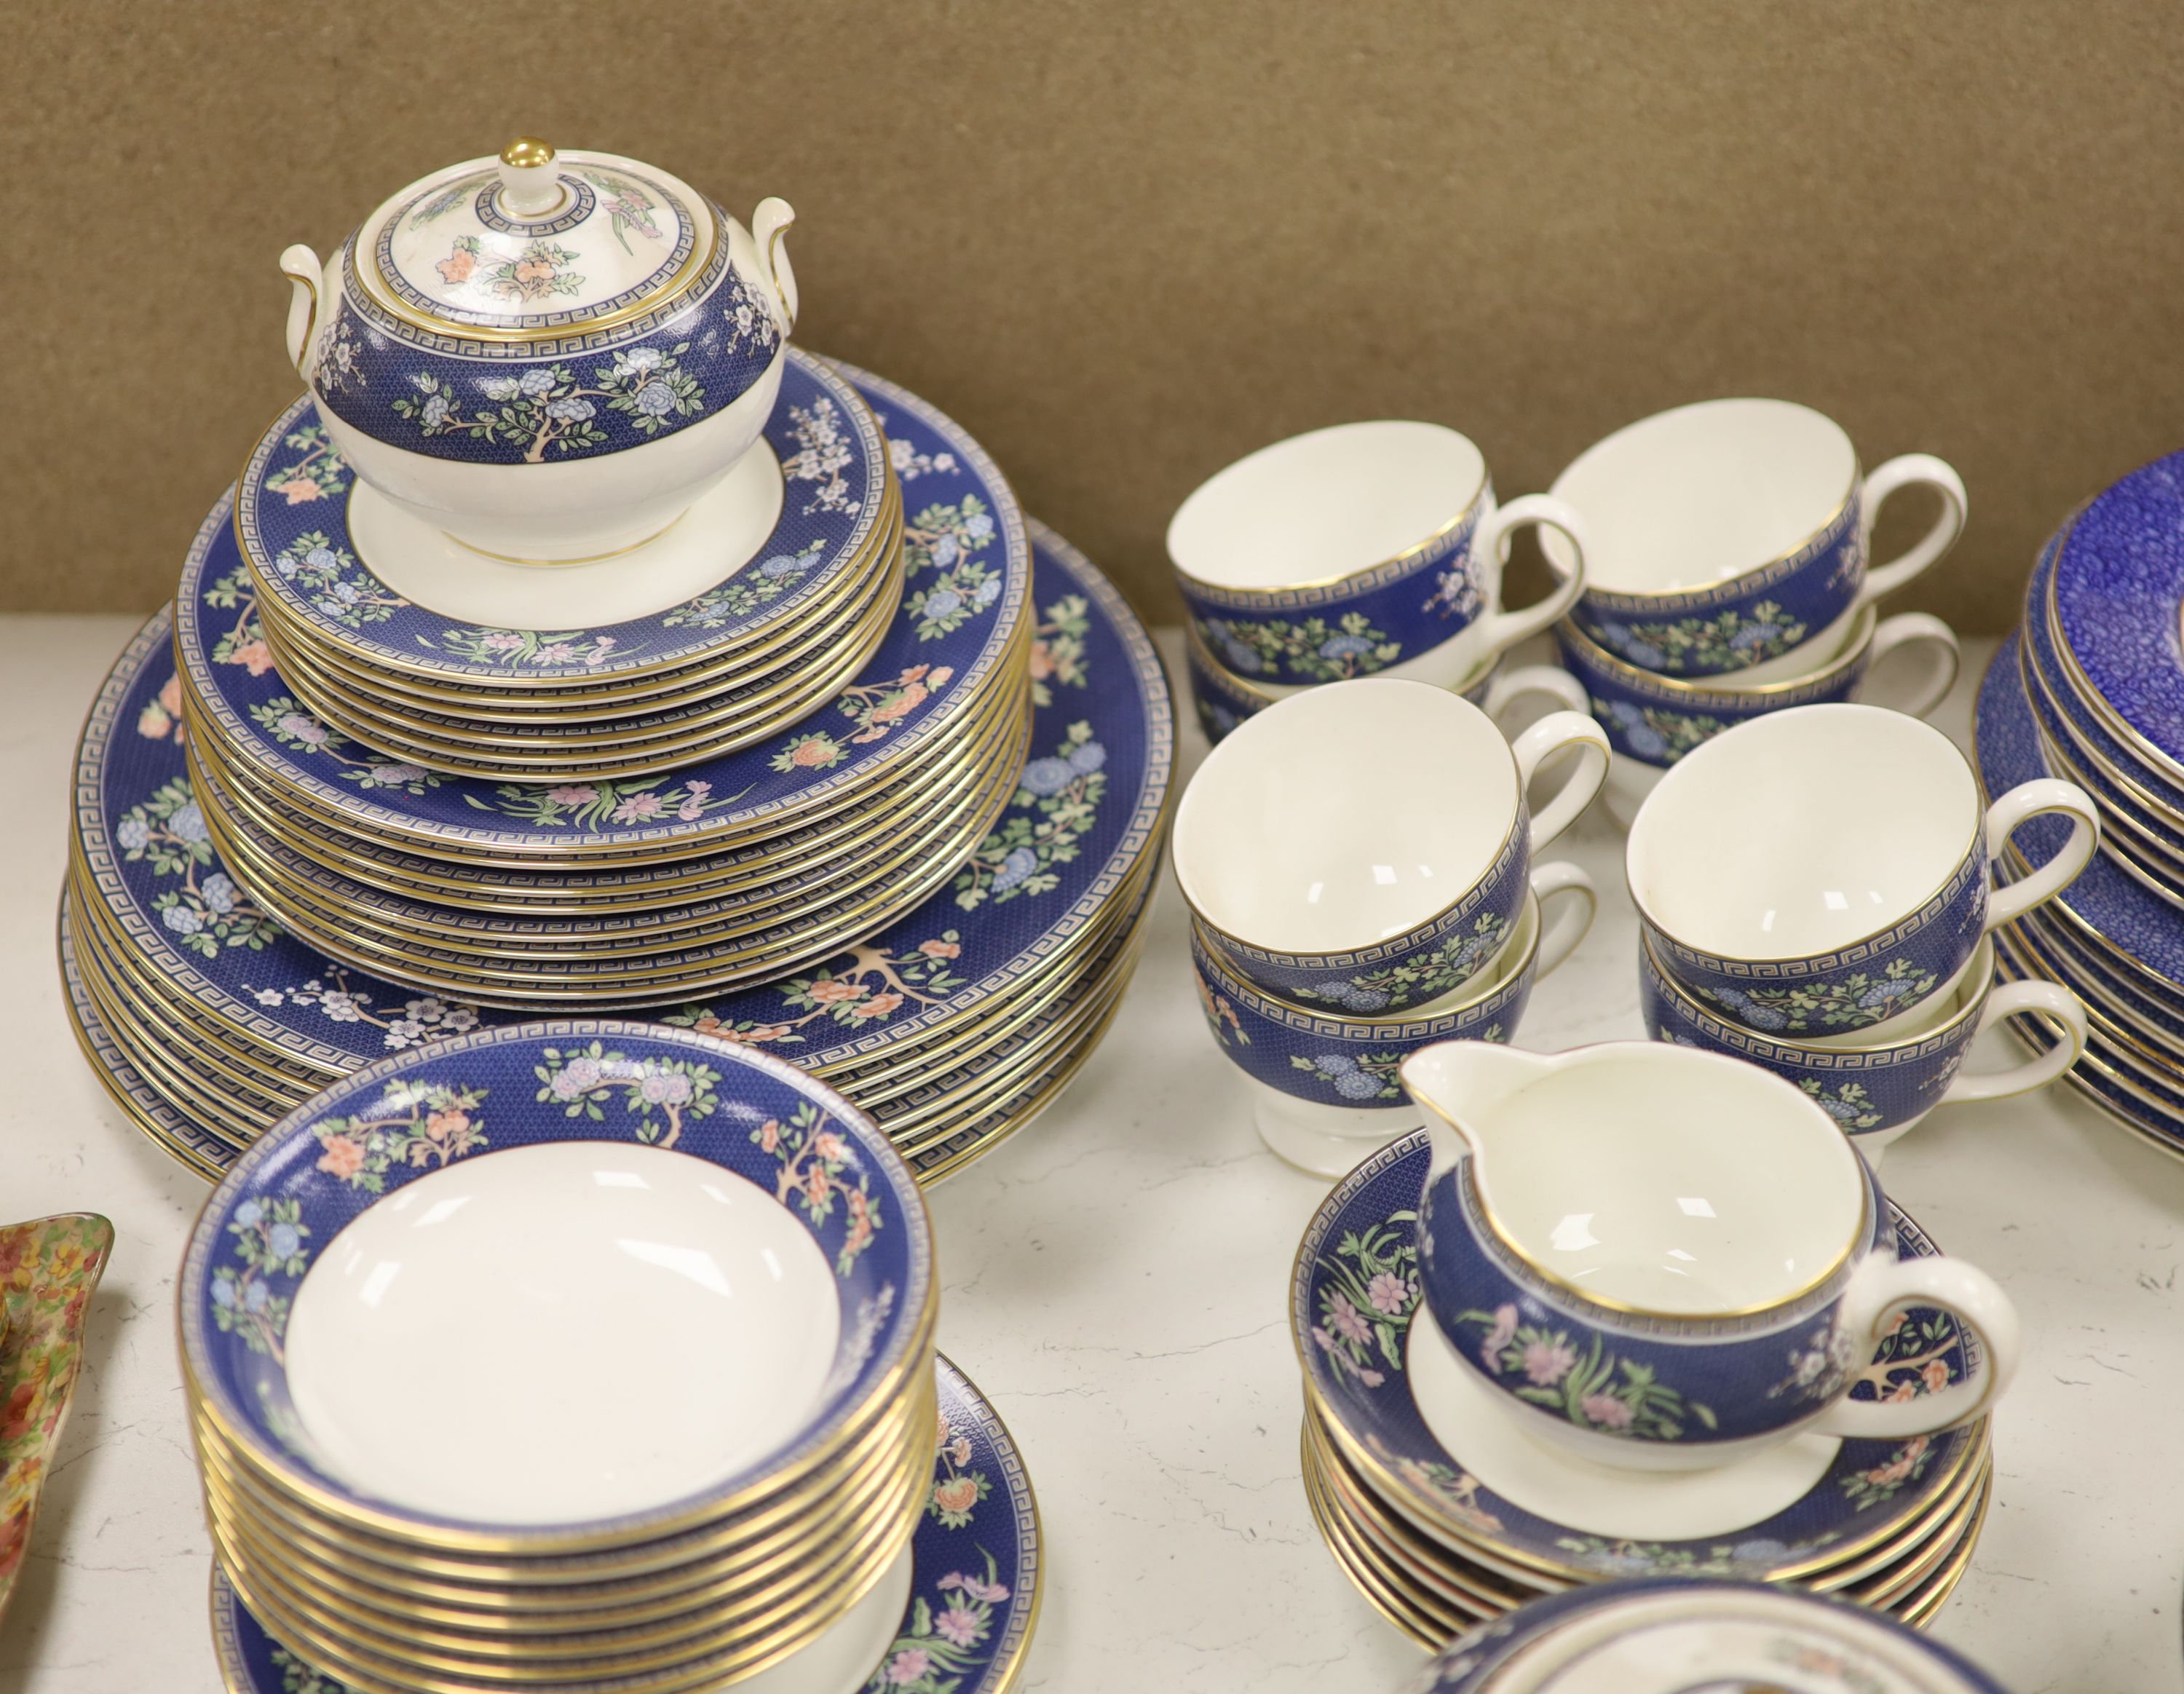 A Wedgwood 'Blue Siam' pattern part dinner service and other mixed ceramics - Image 6 of 8